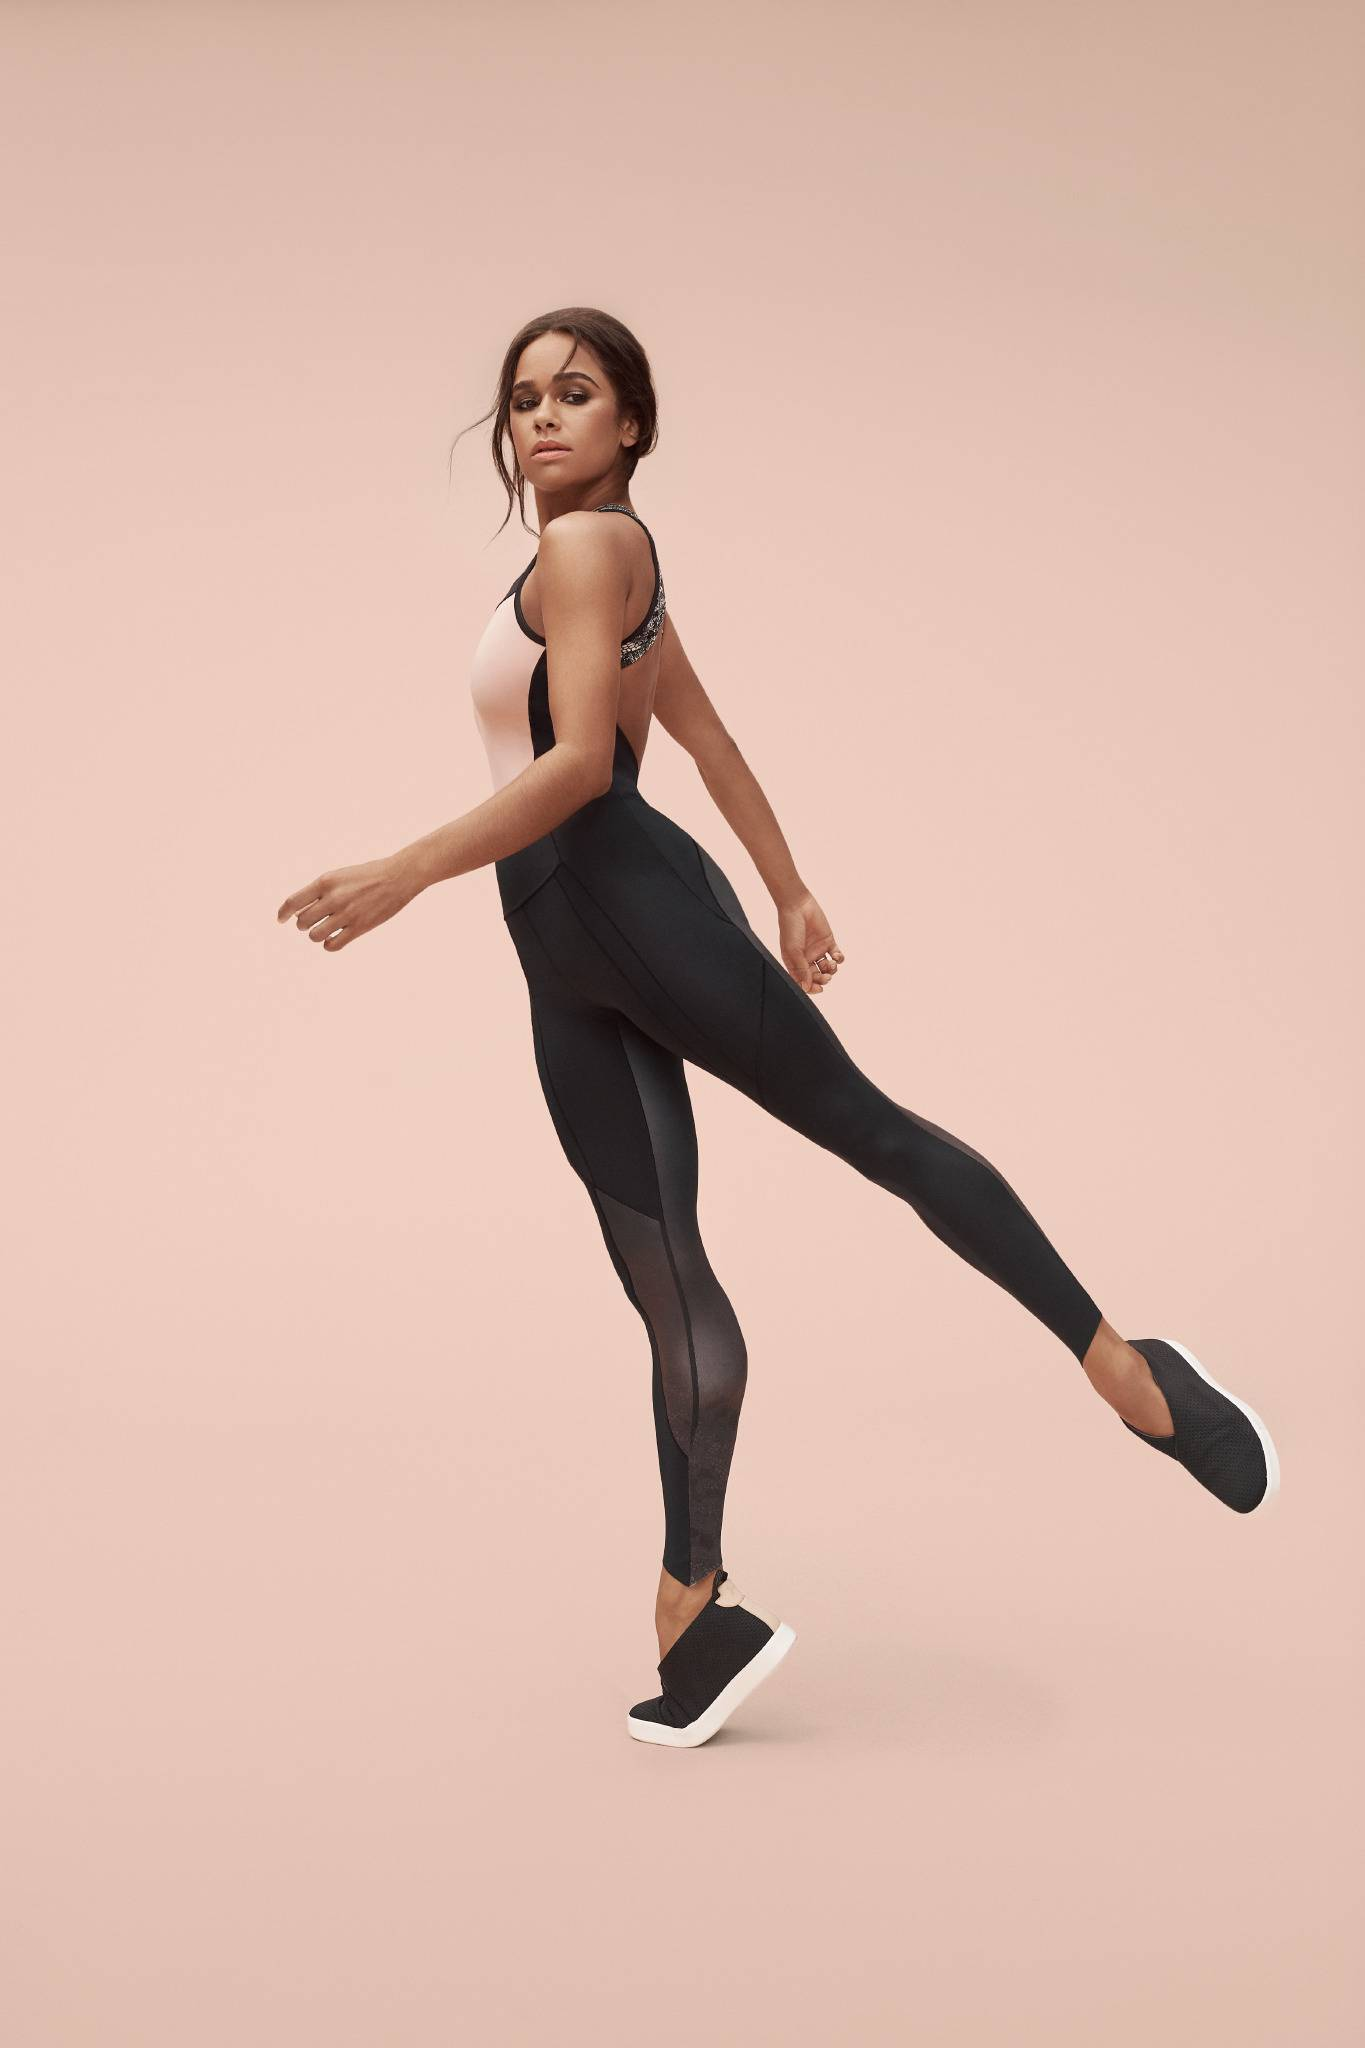 Under Armour X Misty Copeland: Signature Collection Revealed